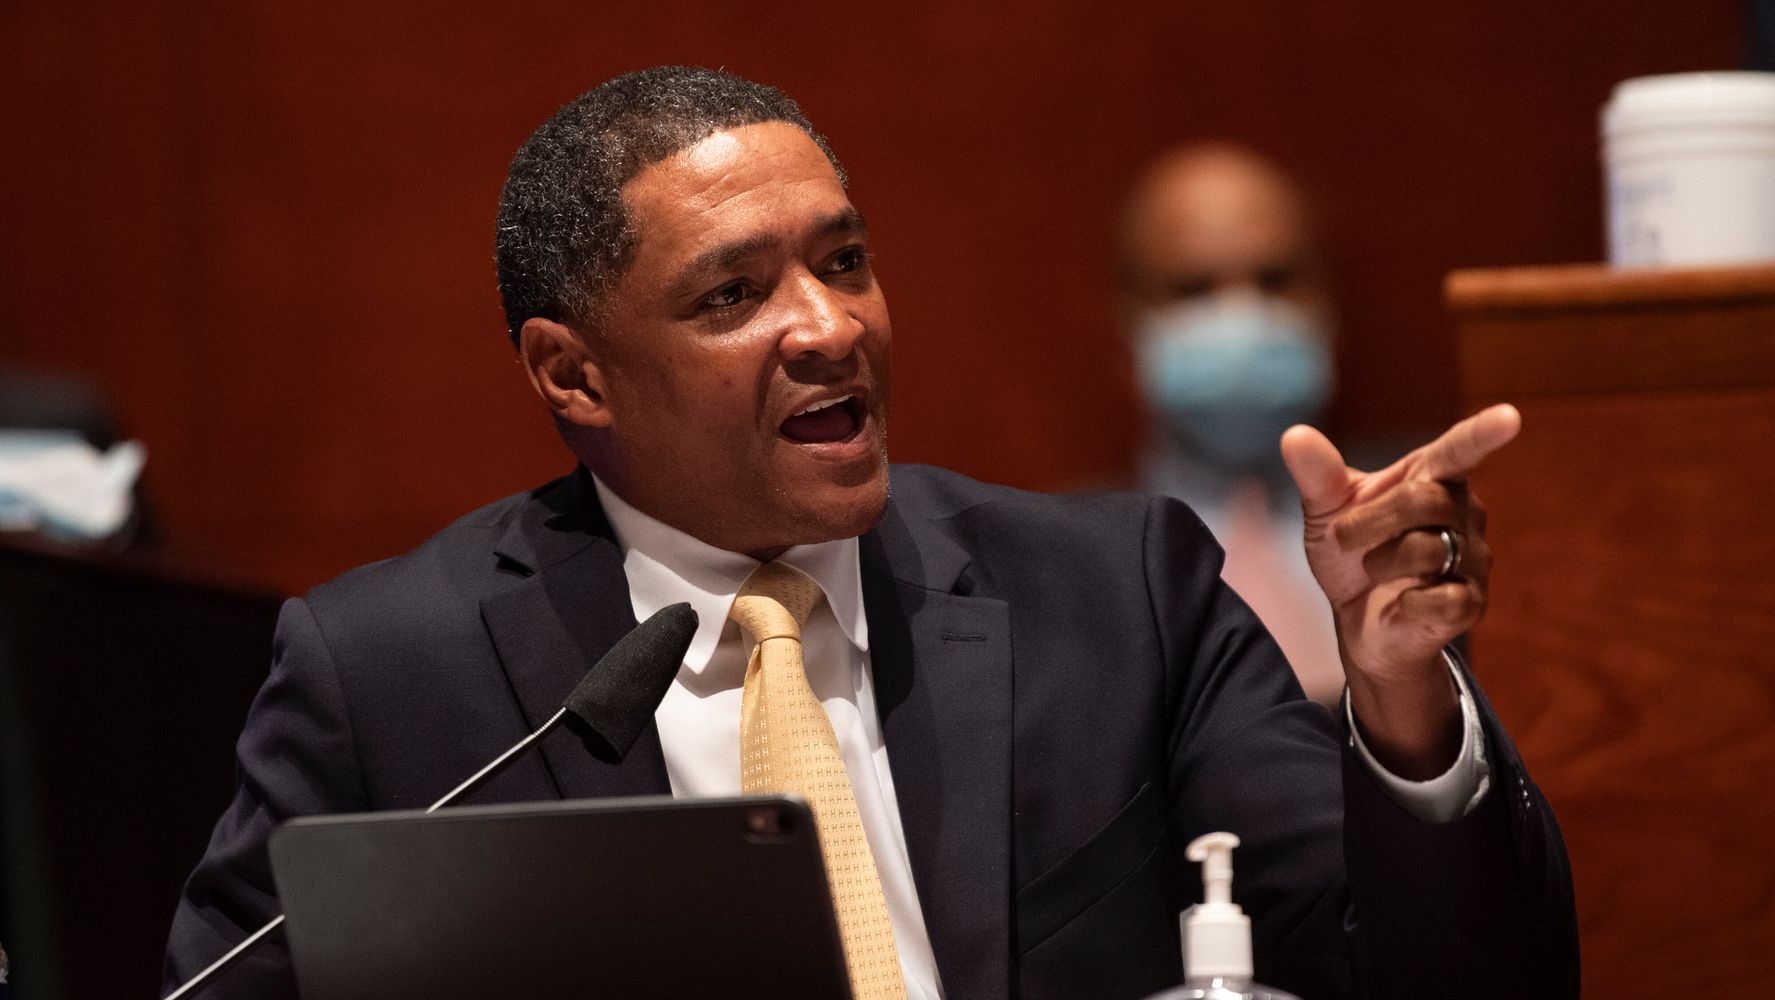 Cedric Richmond To William Barr: Keep John Lewis' Name Out Of Your Mouth